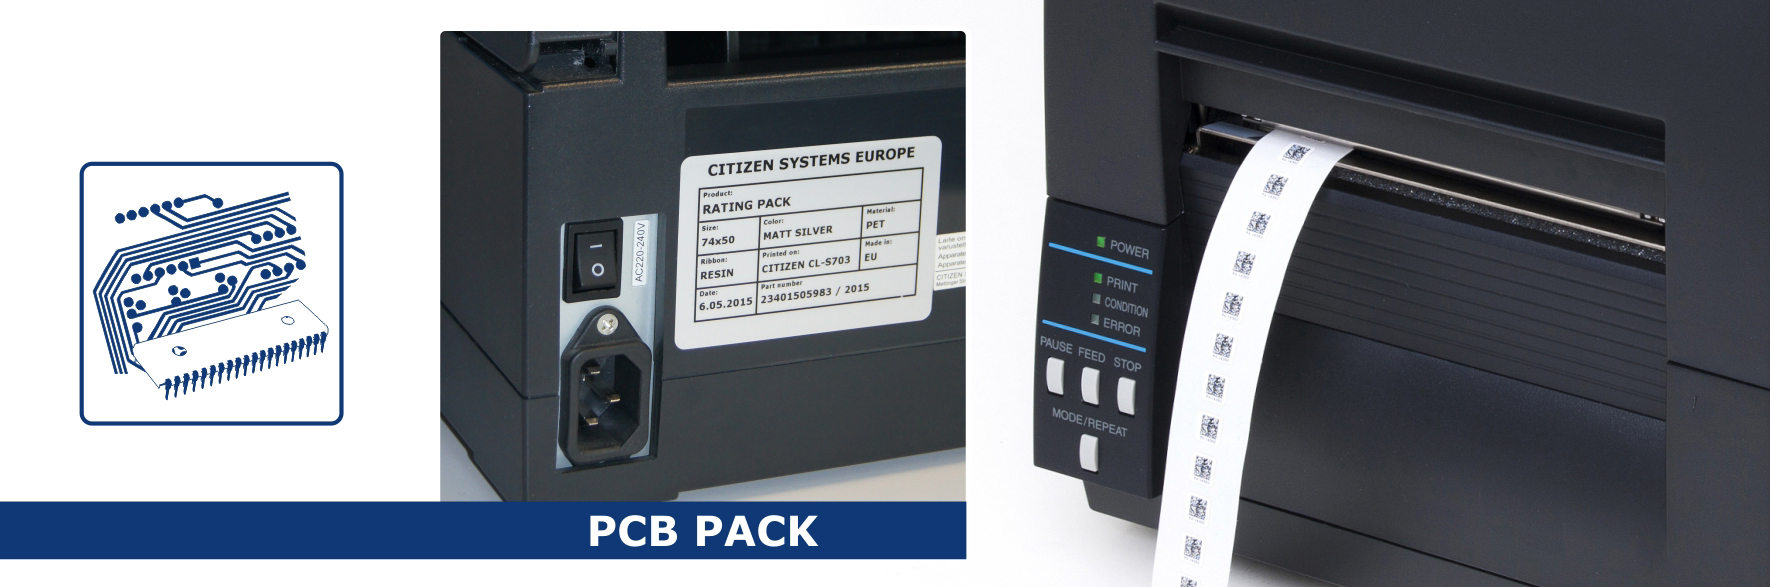 PCB Pack  – for efficient traceability